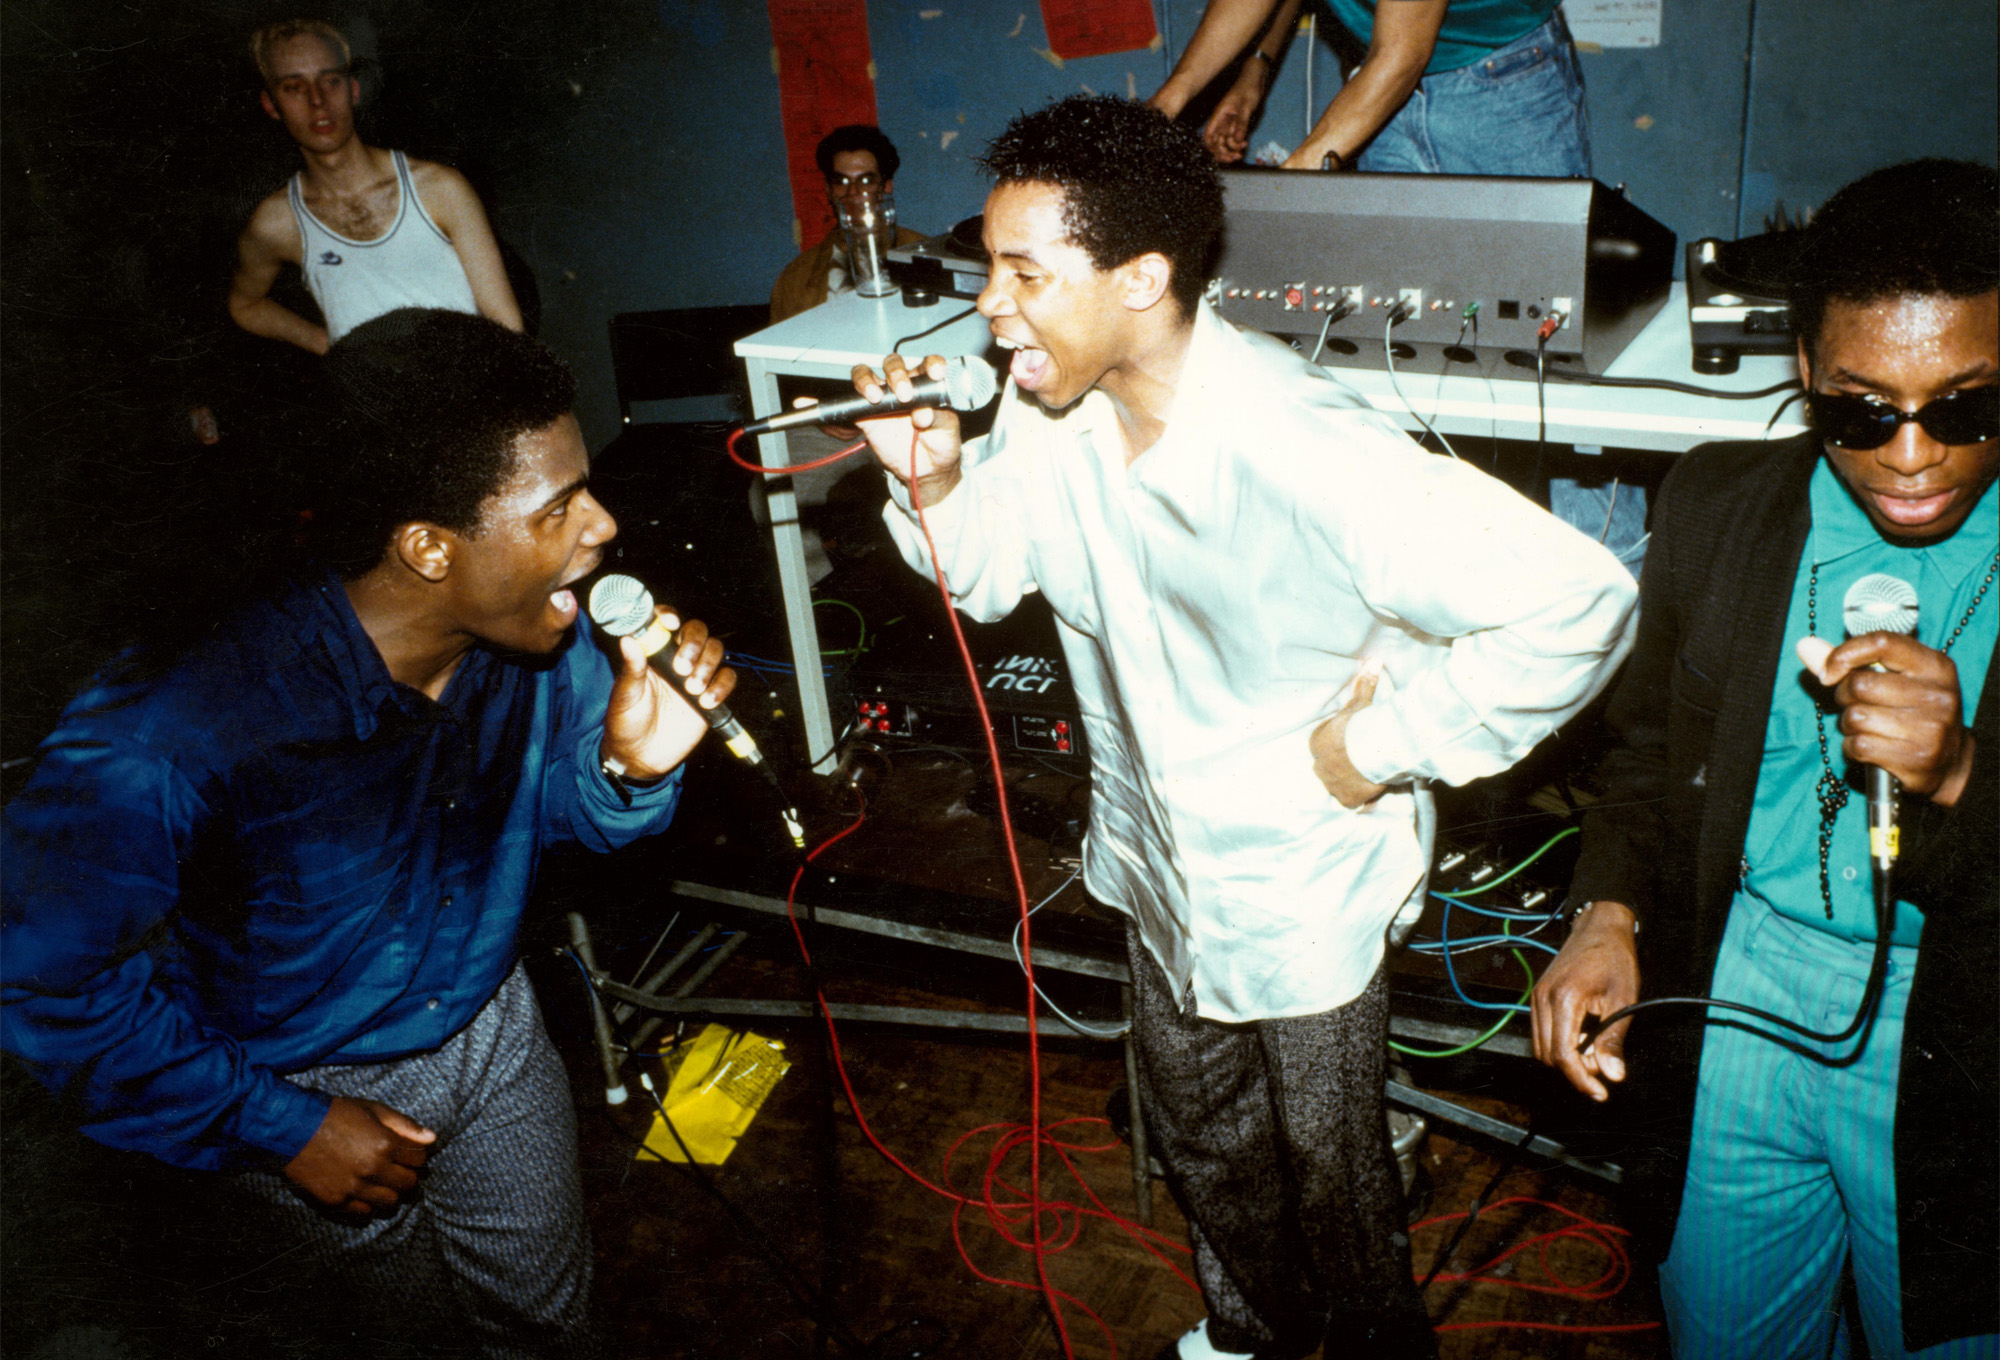 Three people standing together as a group singing into microphones in a club setting